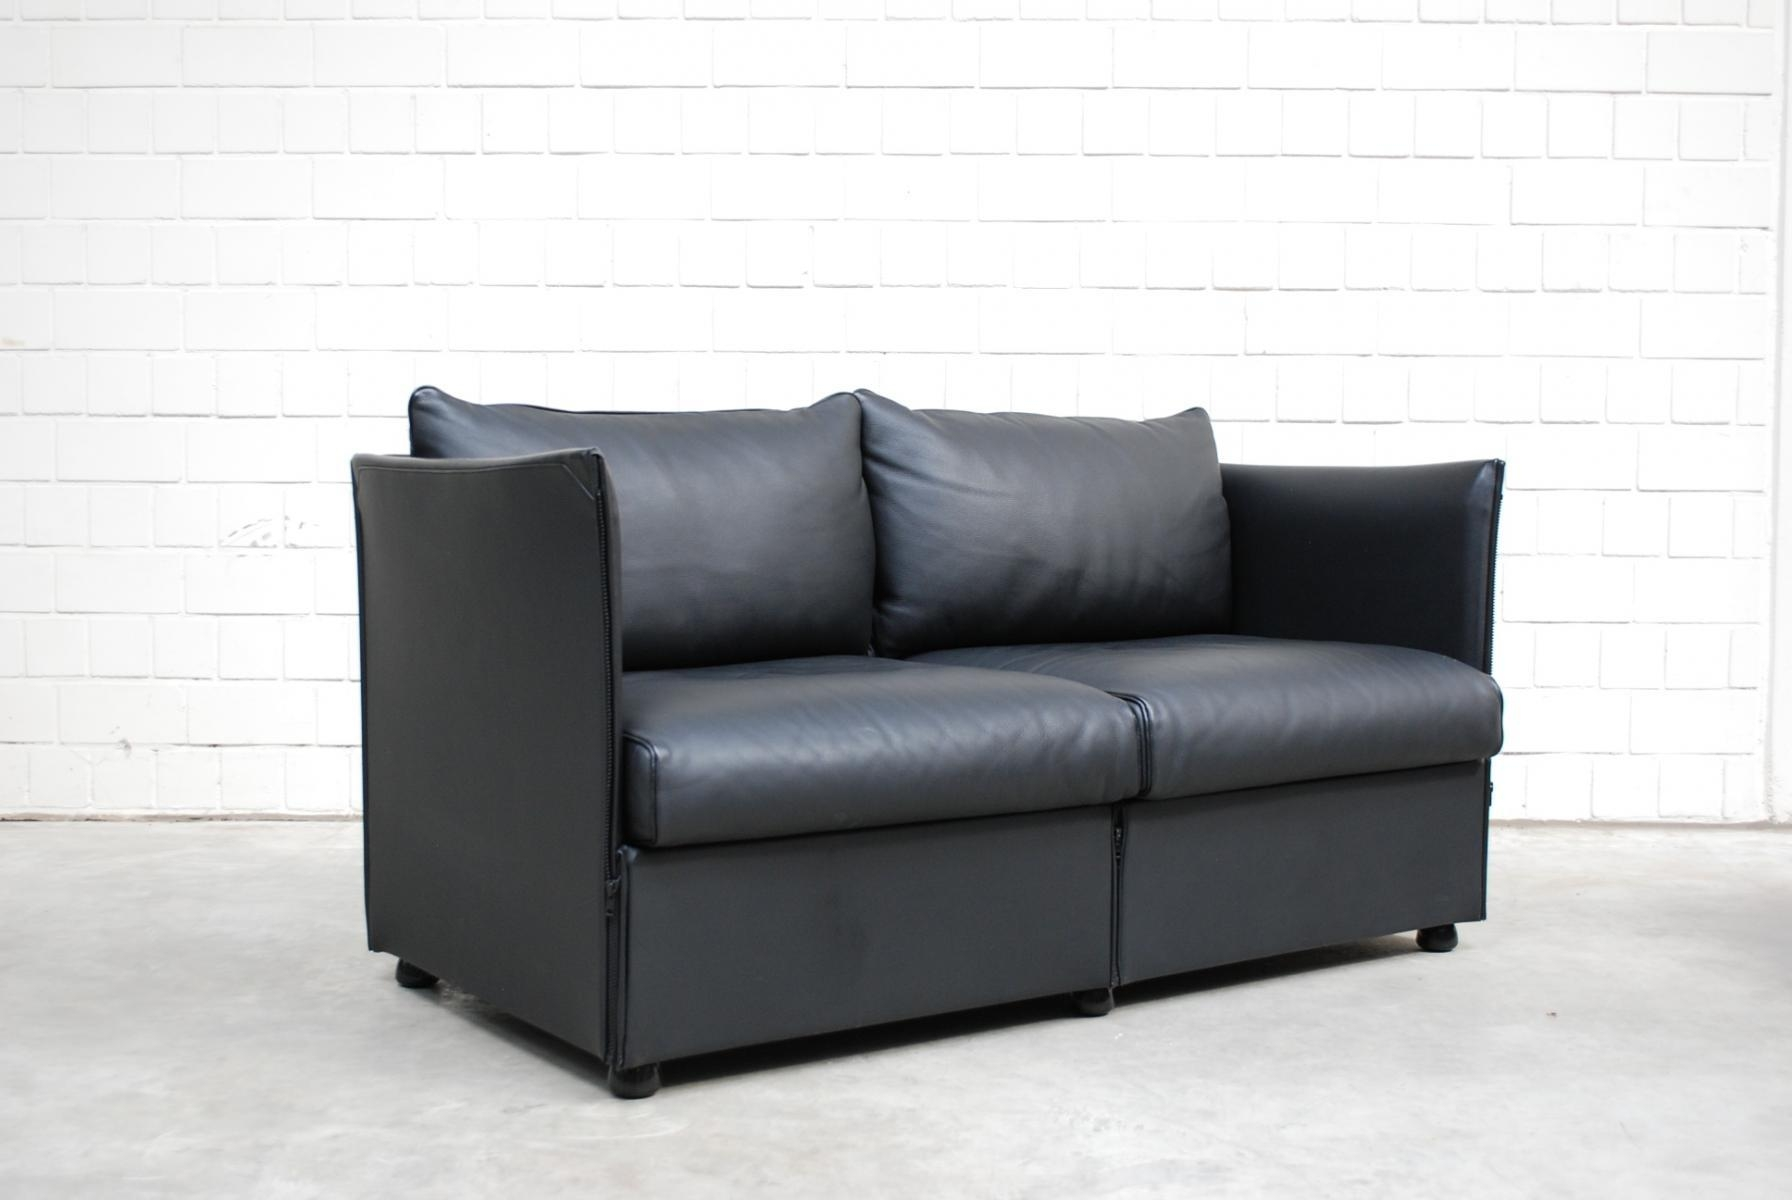 Model Landeau Leather Sofamario Bellini For Cassina, 1976 For Pertaining To Bellini Couches (Image 13 of 20)